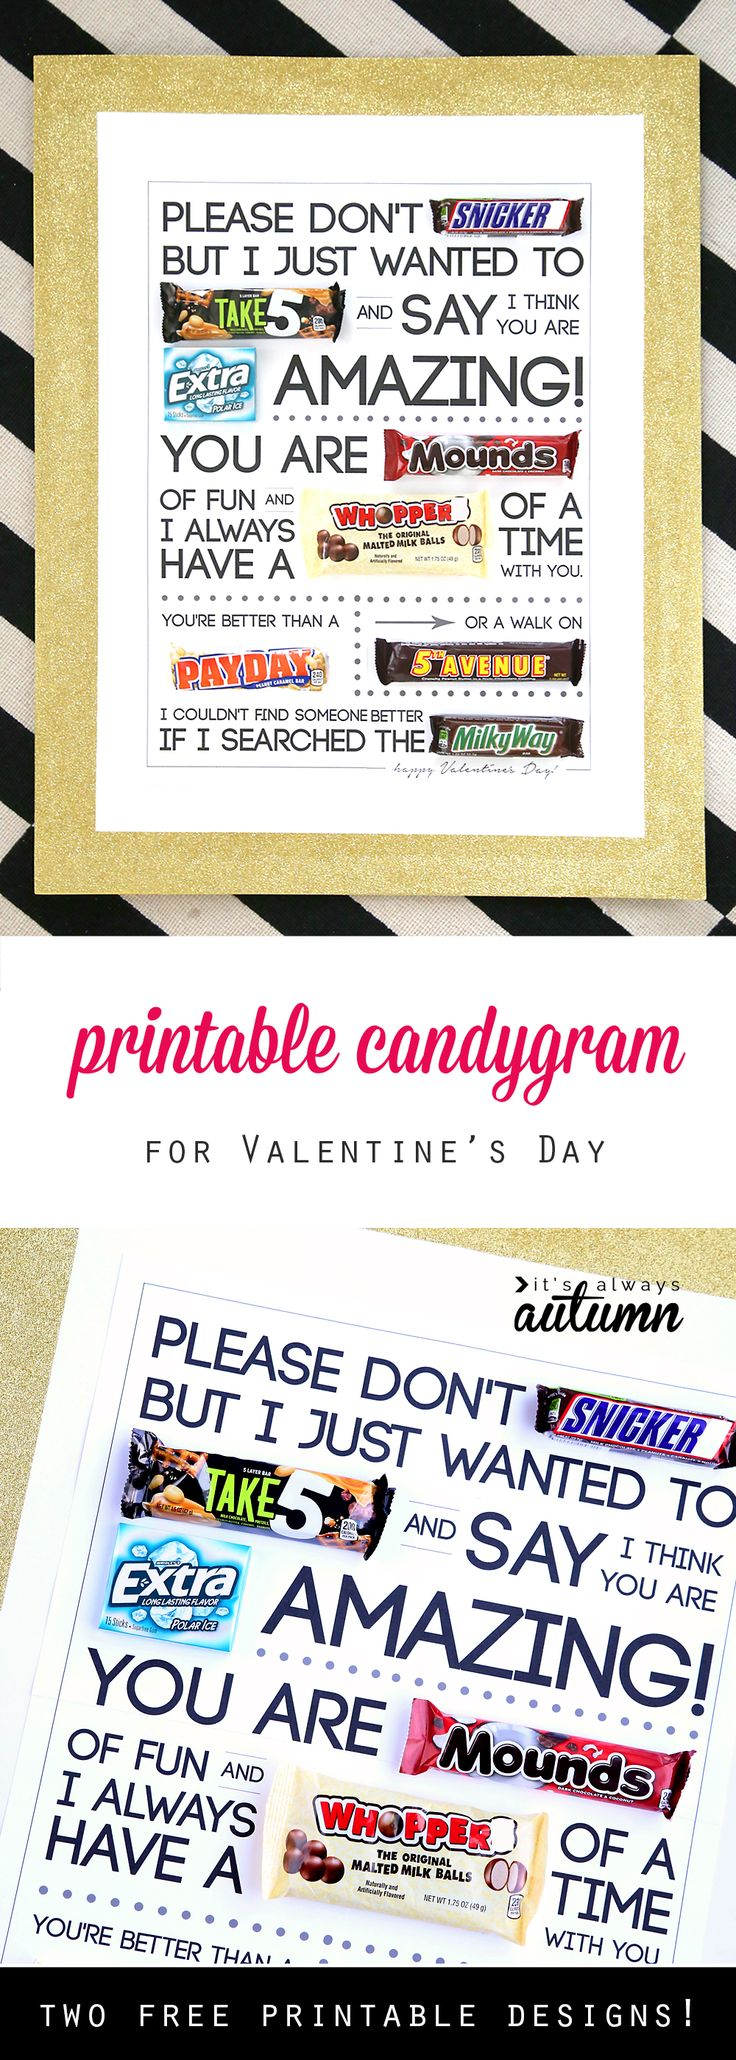 Valentine's Day candygram! Free printable candy poster. Great Valentine's gift for husbands, guys, teens, boyfriends, etc. Cheap and easy!